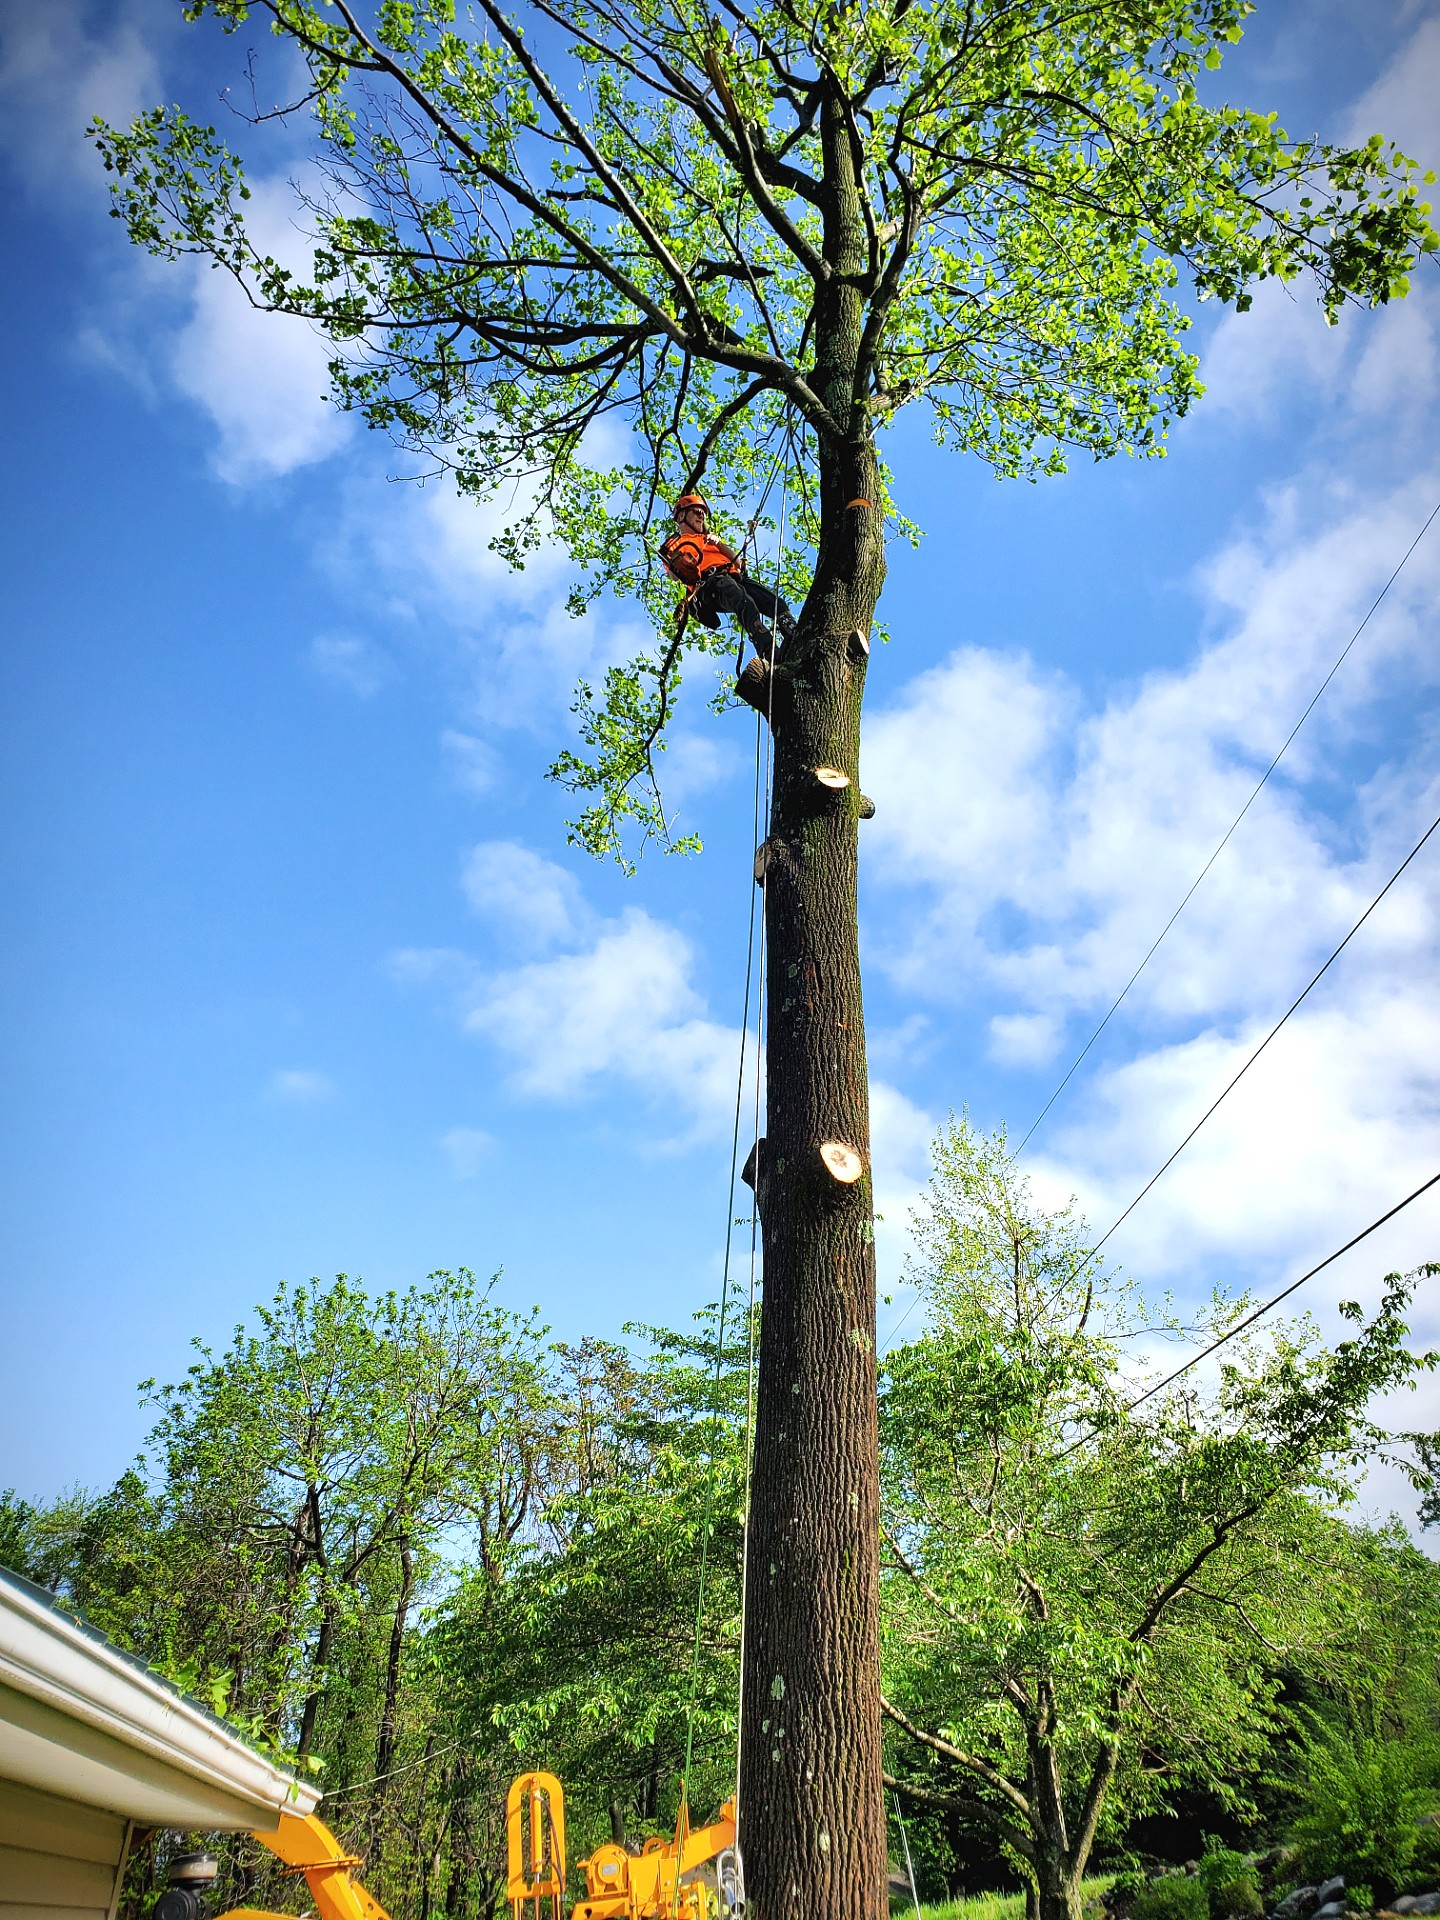 Warrenton Tree Service Company